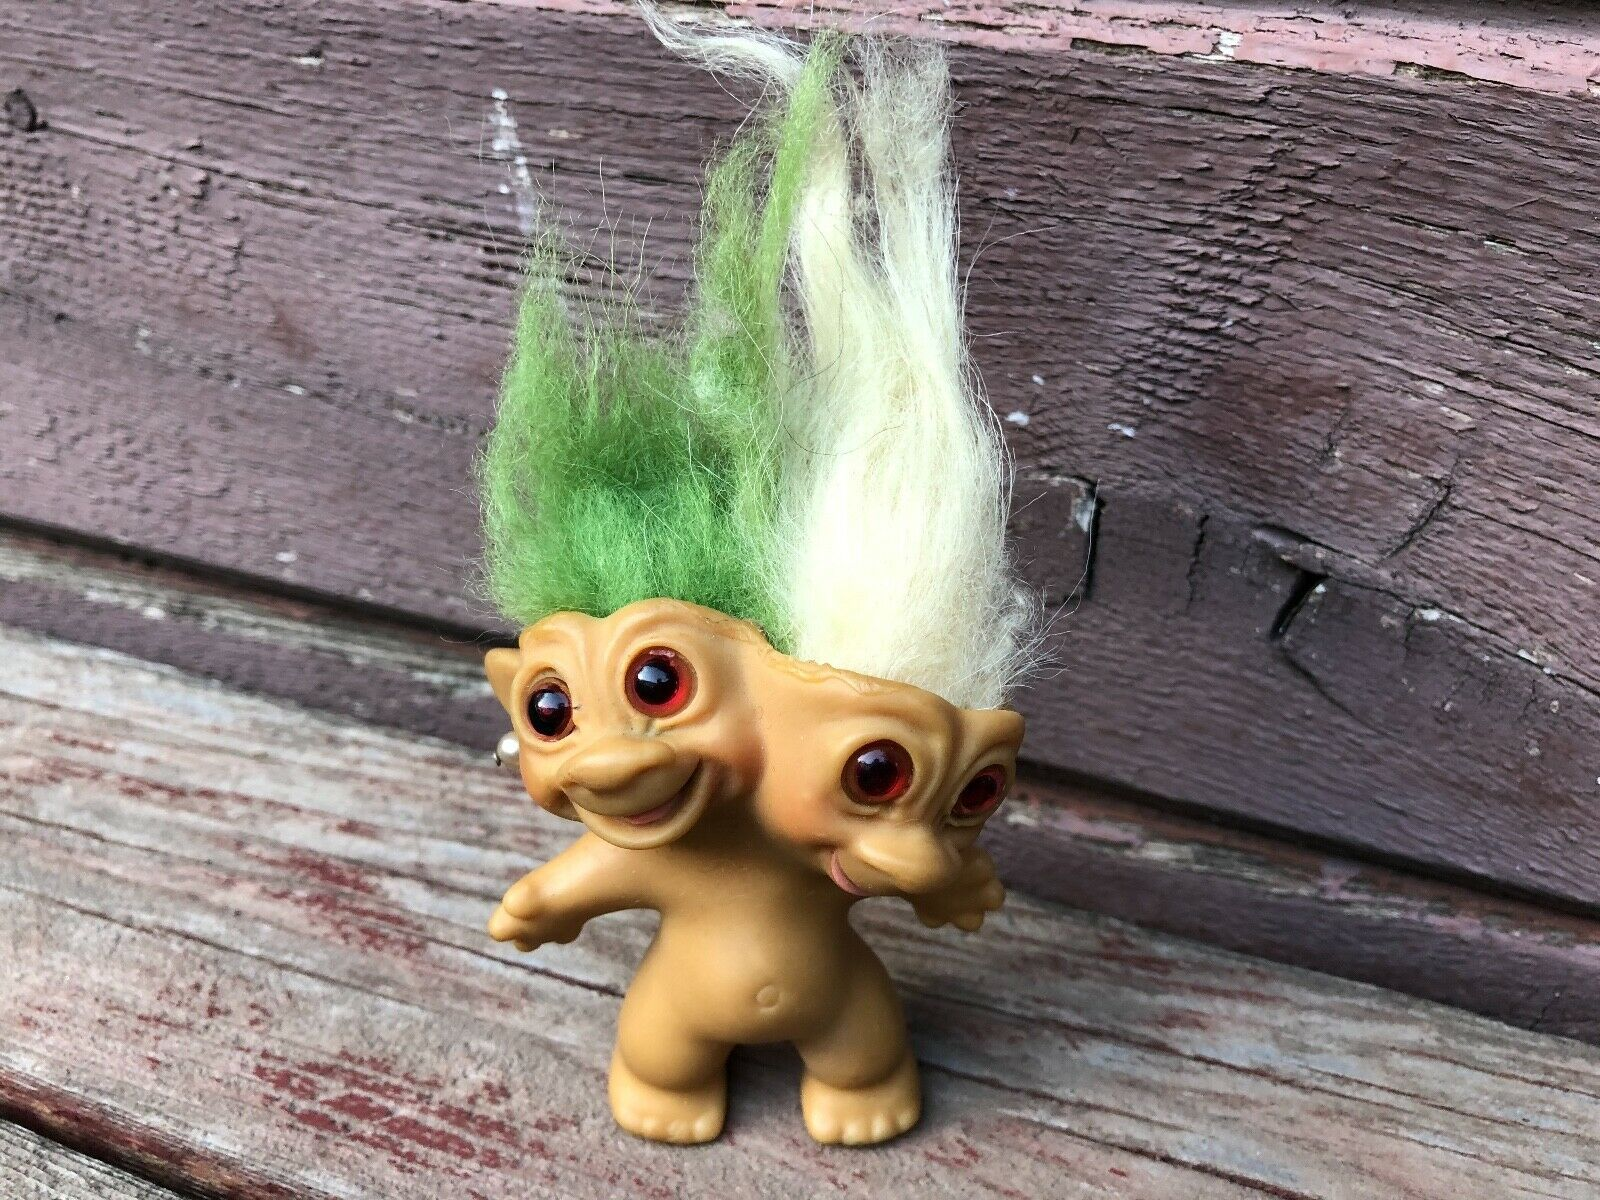 Vintage 1965 Uneeda Two Headed Troll Doll w Earrings Green / White